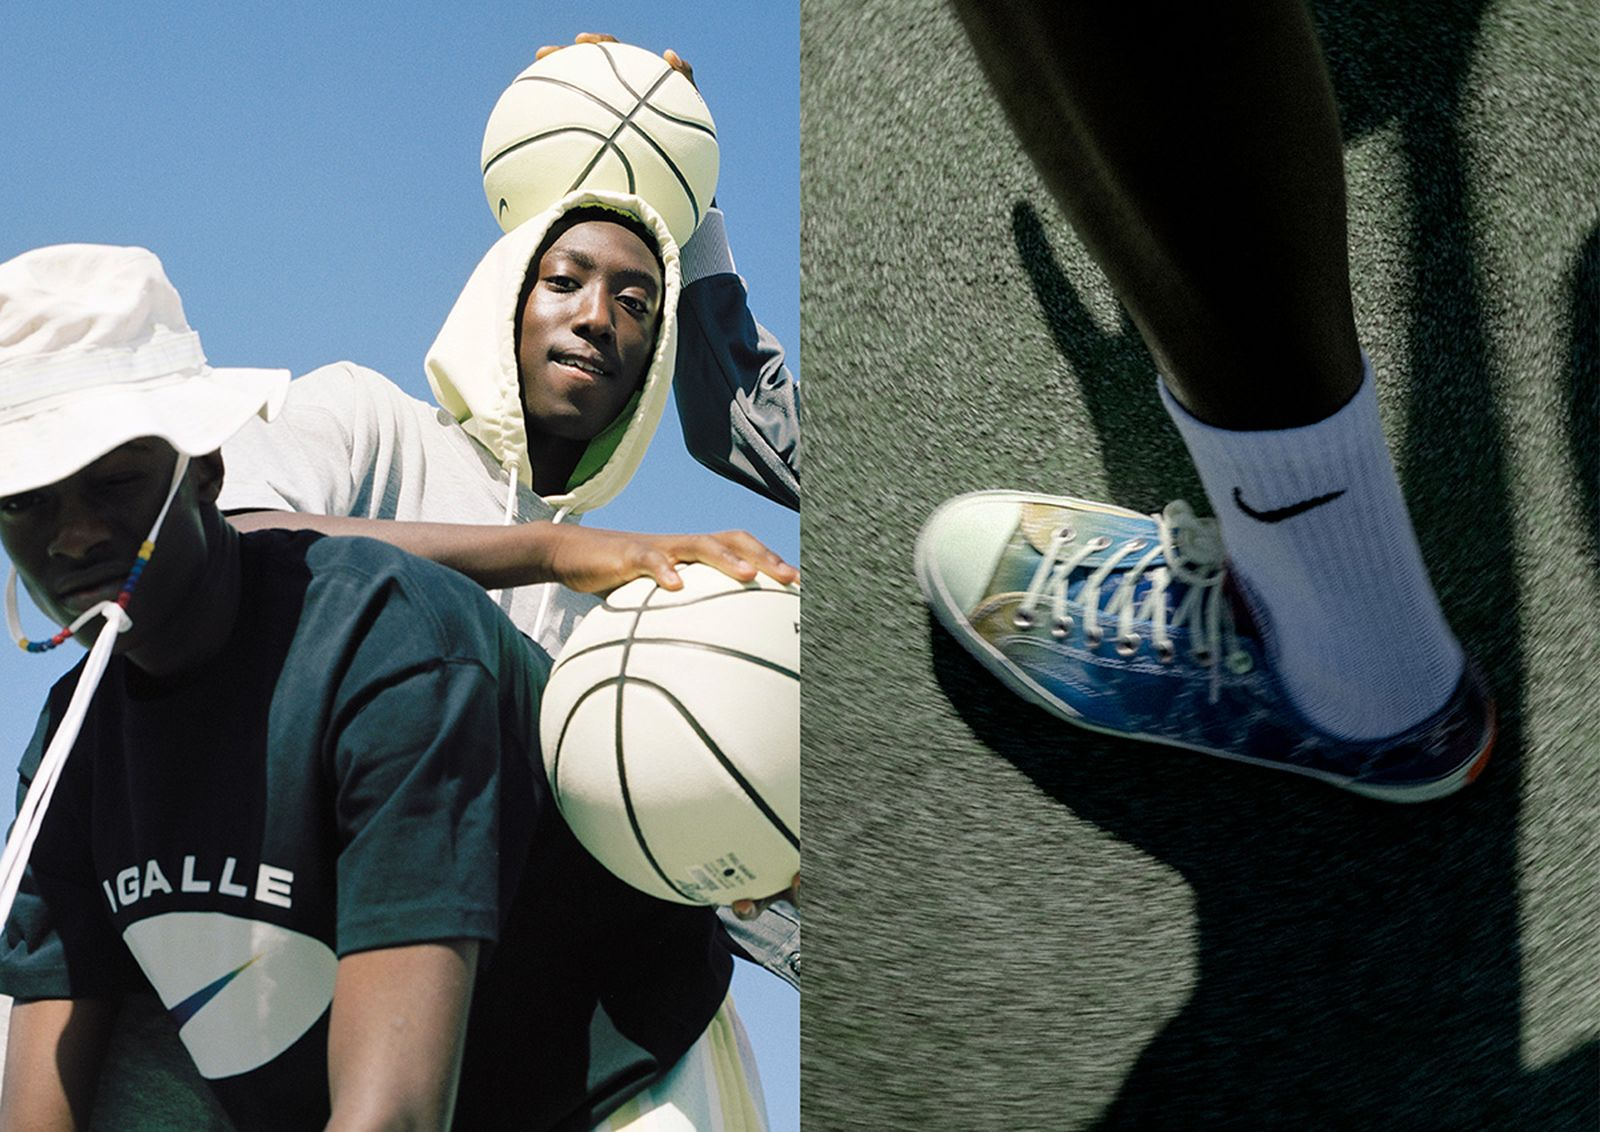 nike-pigalle-stephane-ashpool-interview-12